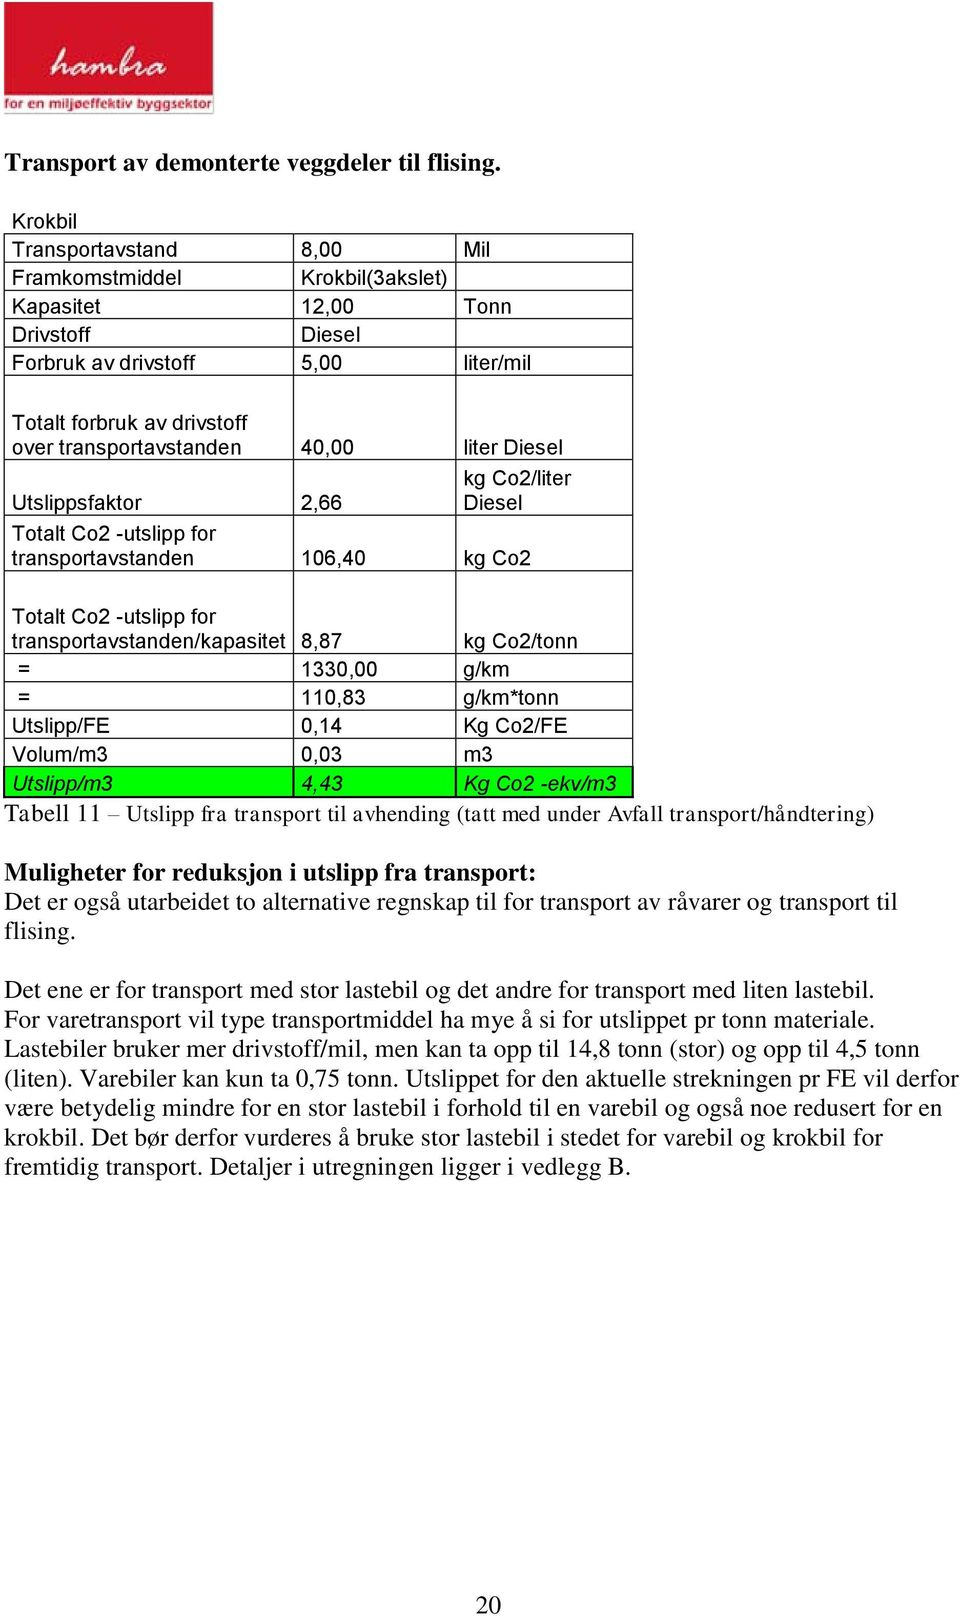 liter Diesel Utslippsfaktor 2,66 kg Co2/liter Diesel Totalt Co2 -utslipp for transportavstanden 106,40 kg Co2 Totalt Co2 -utslipp for transportavstanden/kapasitet 8,87 kg Co2/tonn = 1330,00 g/km =